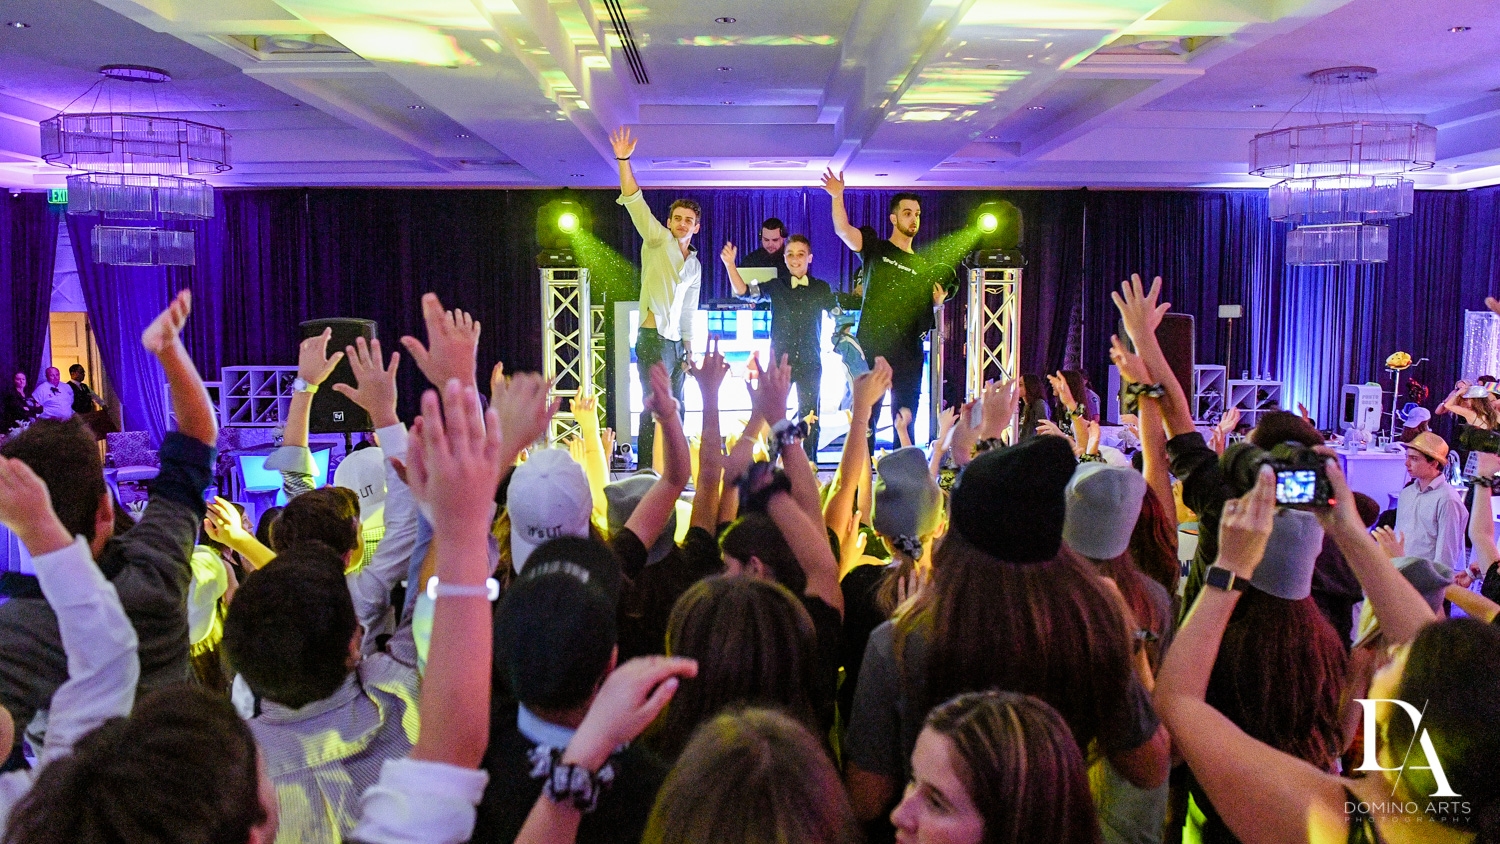 Fun party pics at Luxury B'Nai Mitzvah at Woodfield Country Club by Domino Arts Photography